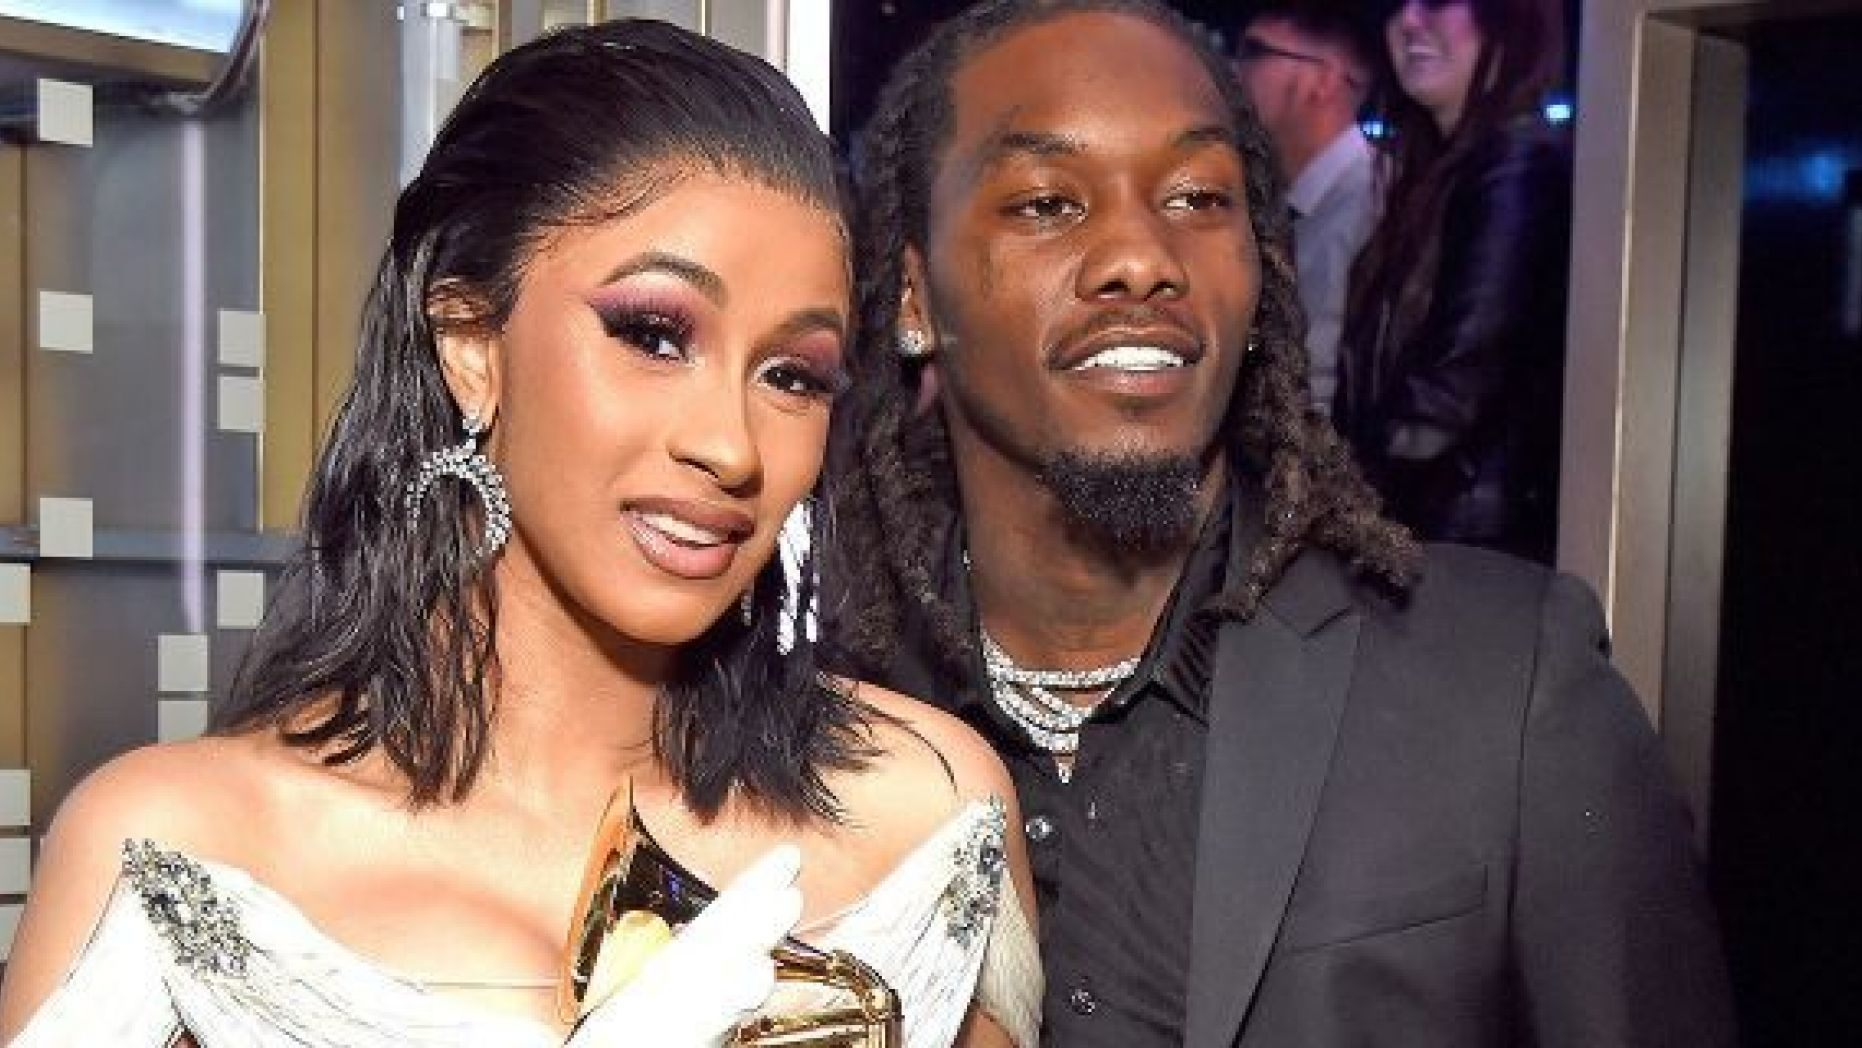 Offset Supports Cardi B After She Had To Cancel Concerts Following Plastic Surgery